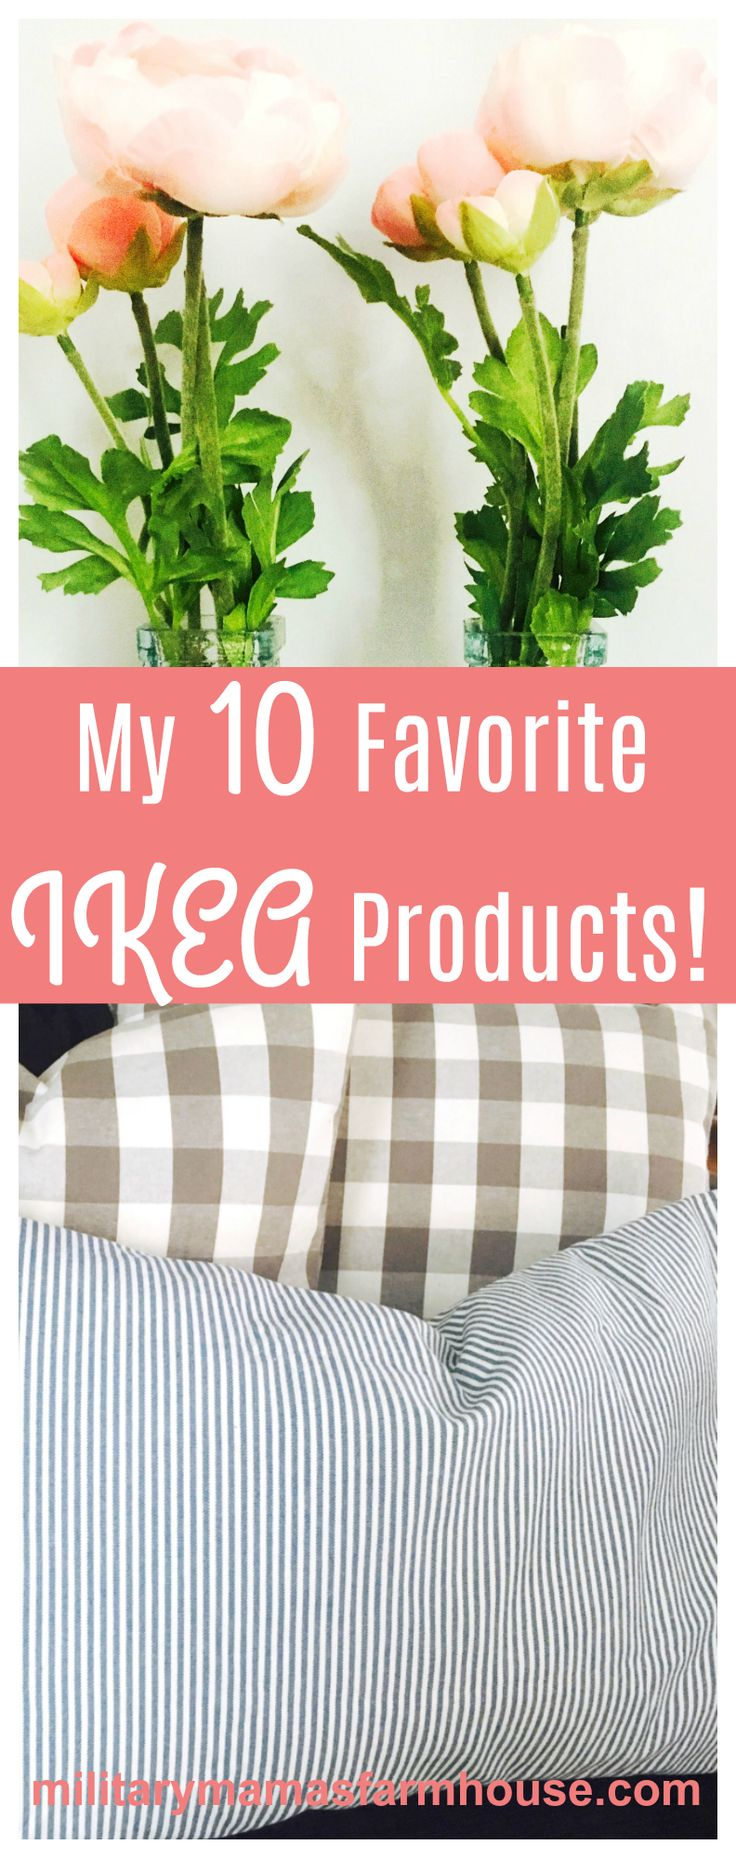 IKEA is known for fantastic products at very reasonable prices. As a huge lover of IKEA, I compiled my 10 Favorite IKEA Products, all of which are under $50!